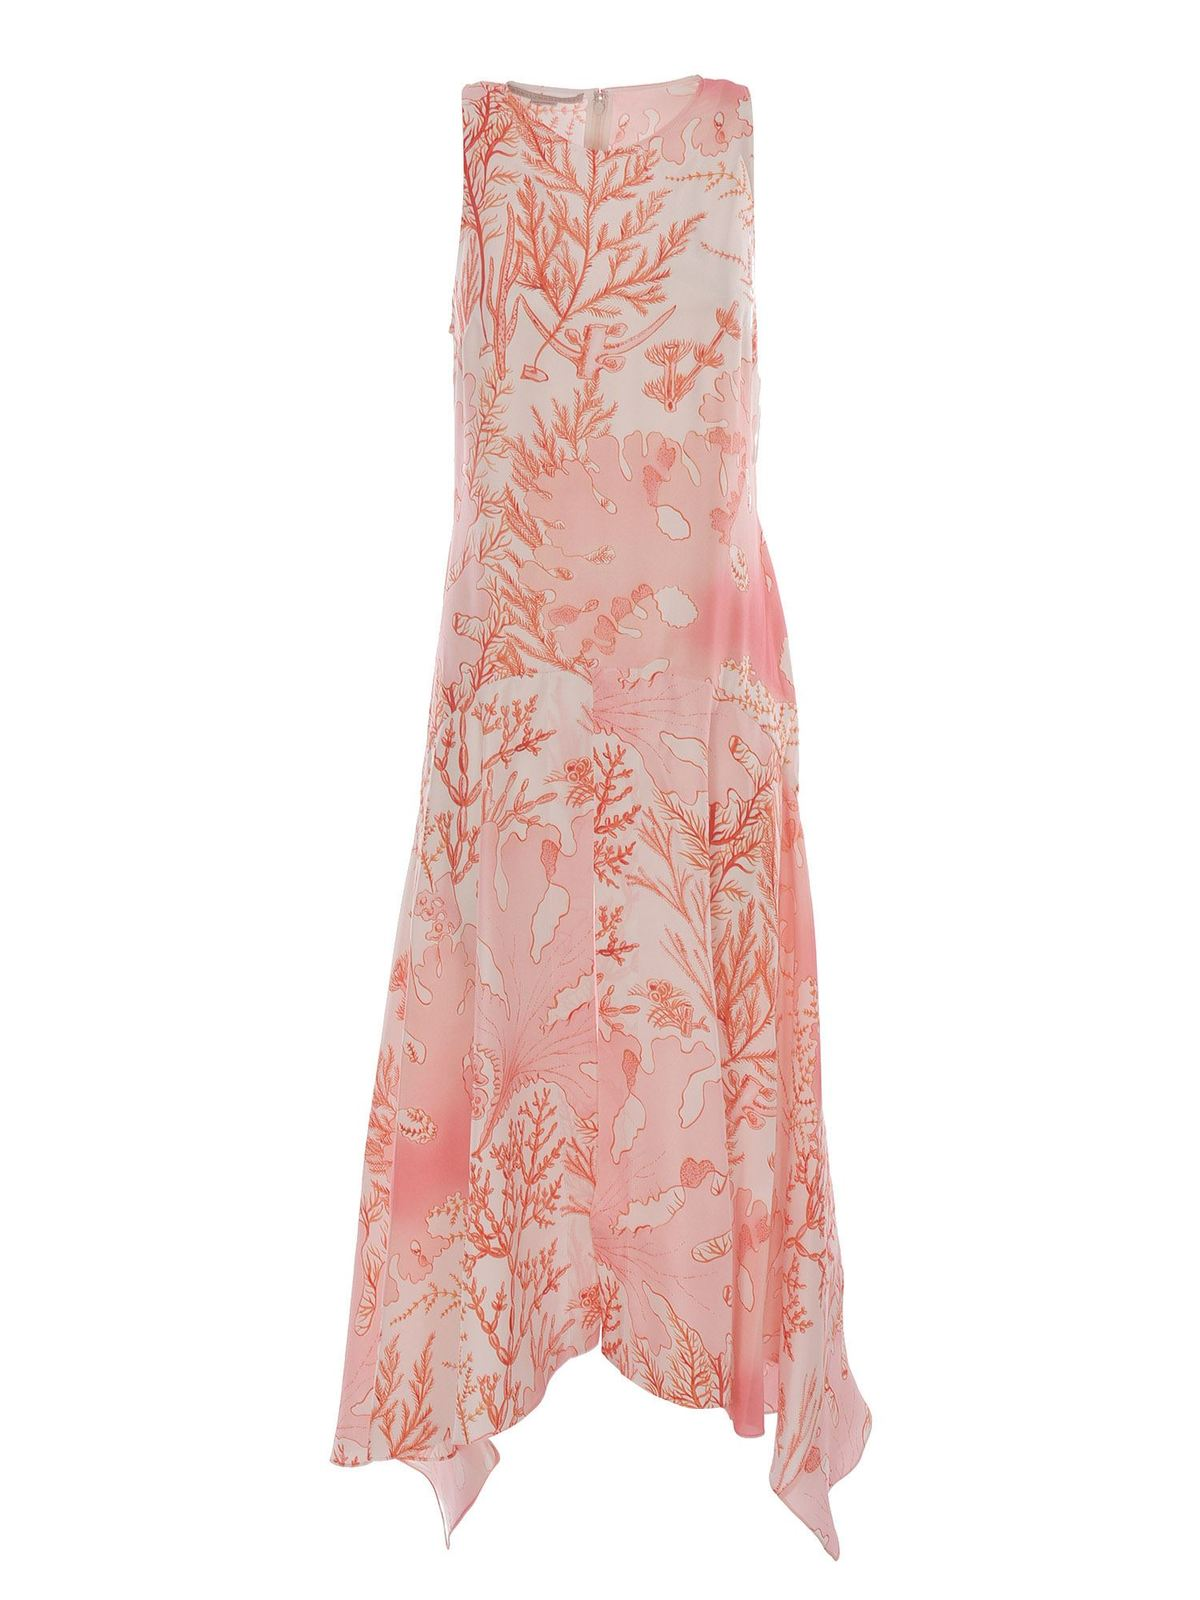 Stella Mccartney CORAL PRINT DRESS IN PINK